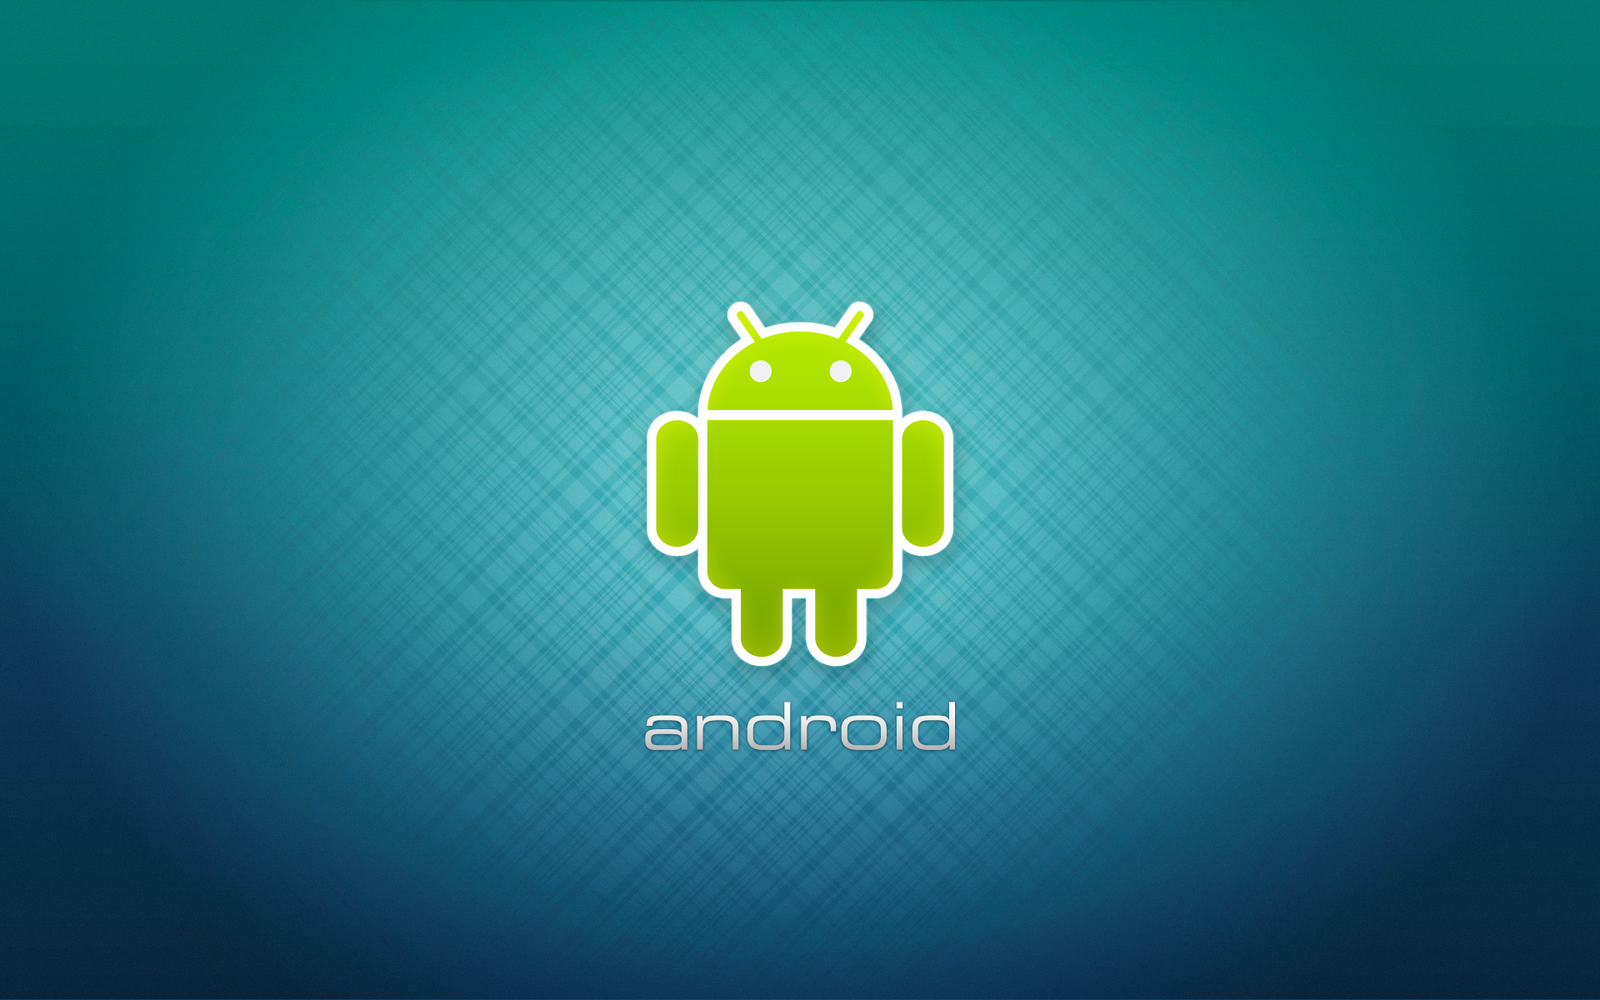 Android Wallpaper Wallpaper Phones Wallpaper with 1600x1000 Resolution 1600x1000